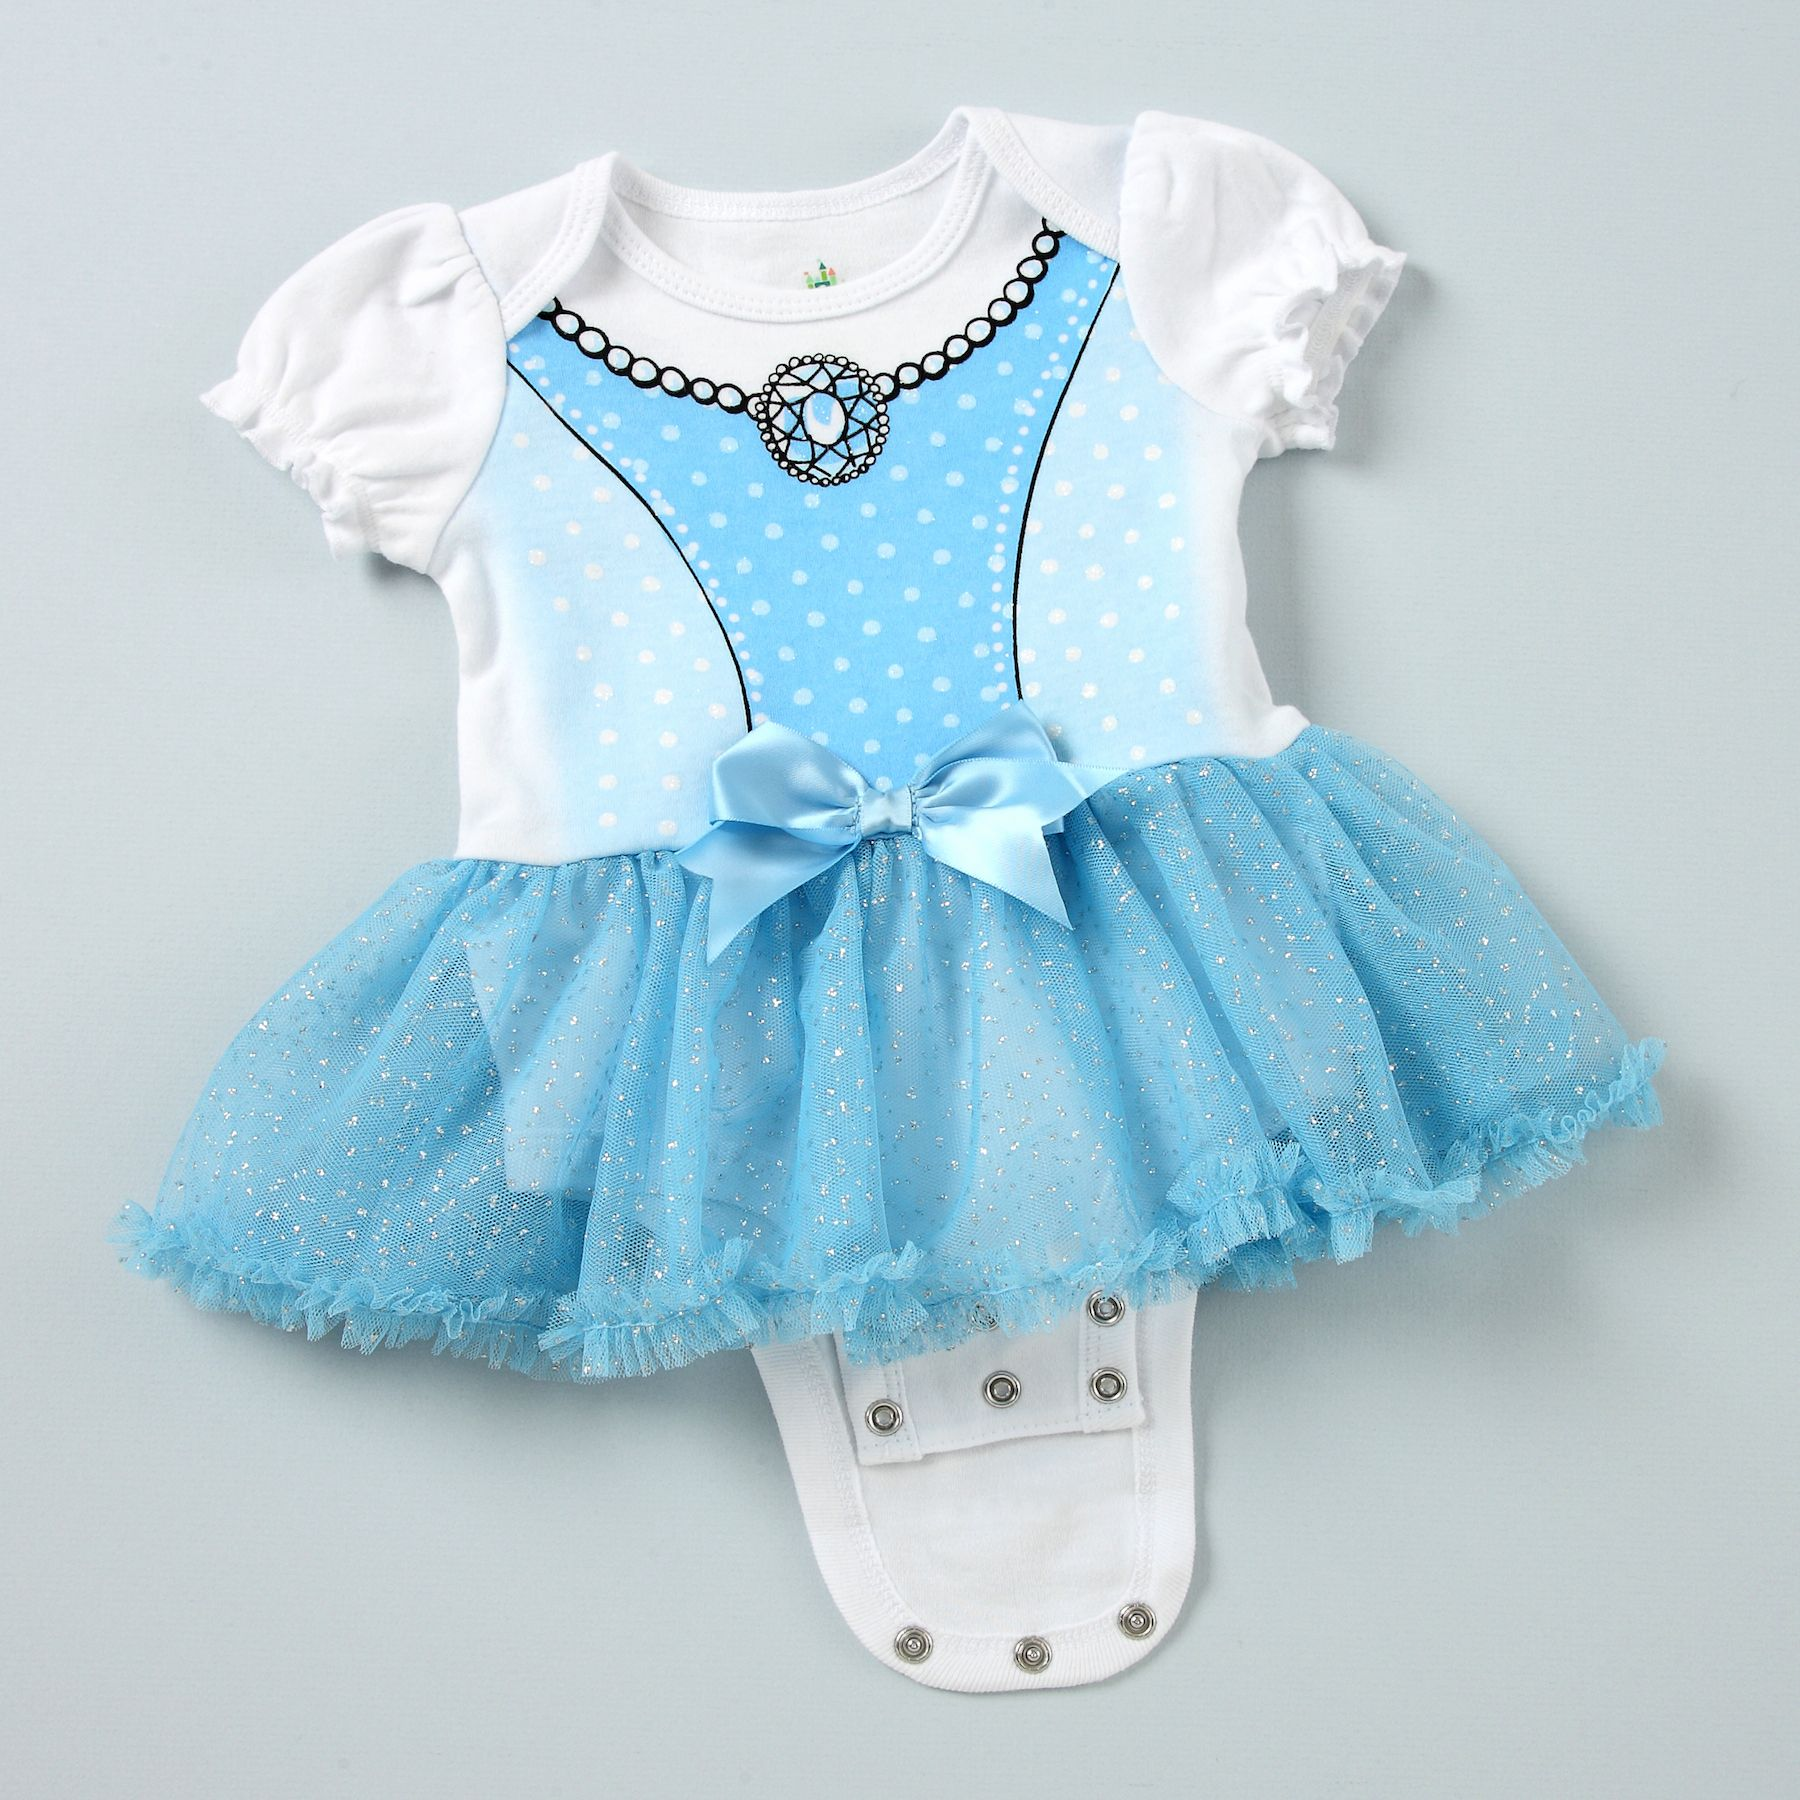 Cinderella Baby Doll Dress On Storenvy: CINDERELLA Disney Cuddly Bodysuit™ With Tutu Featuring